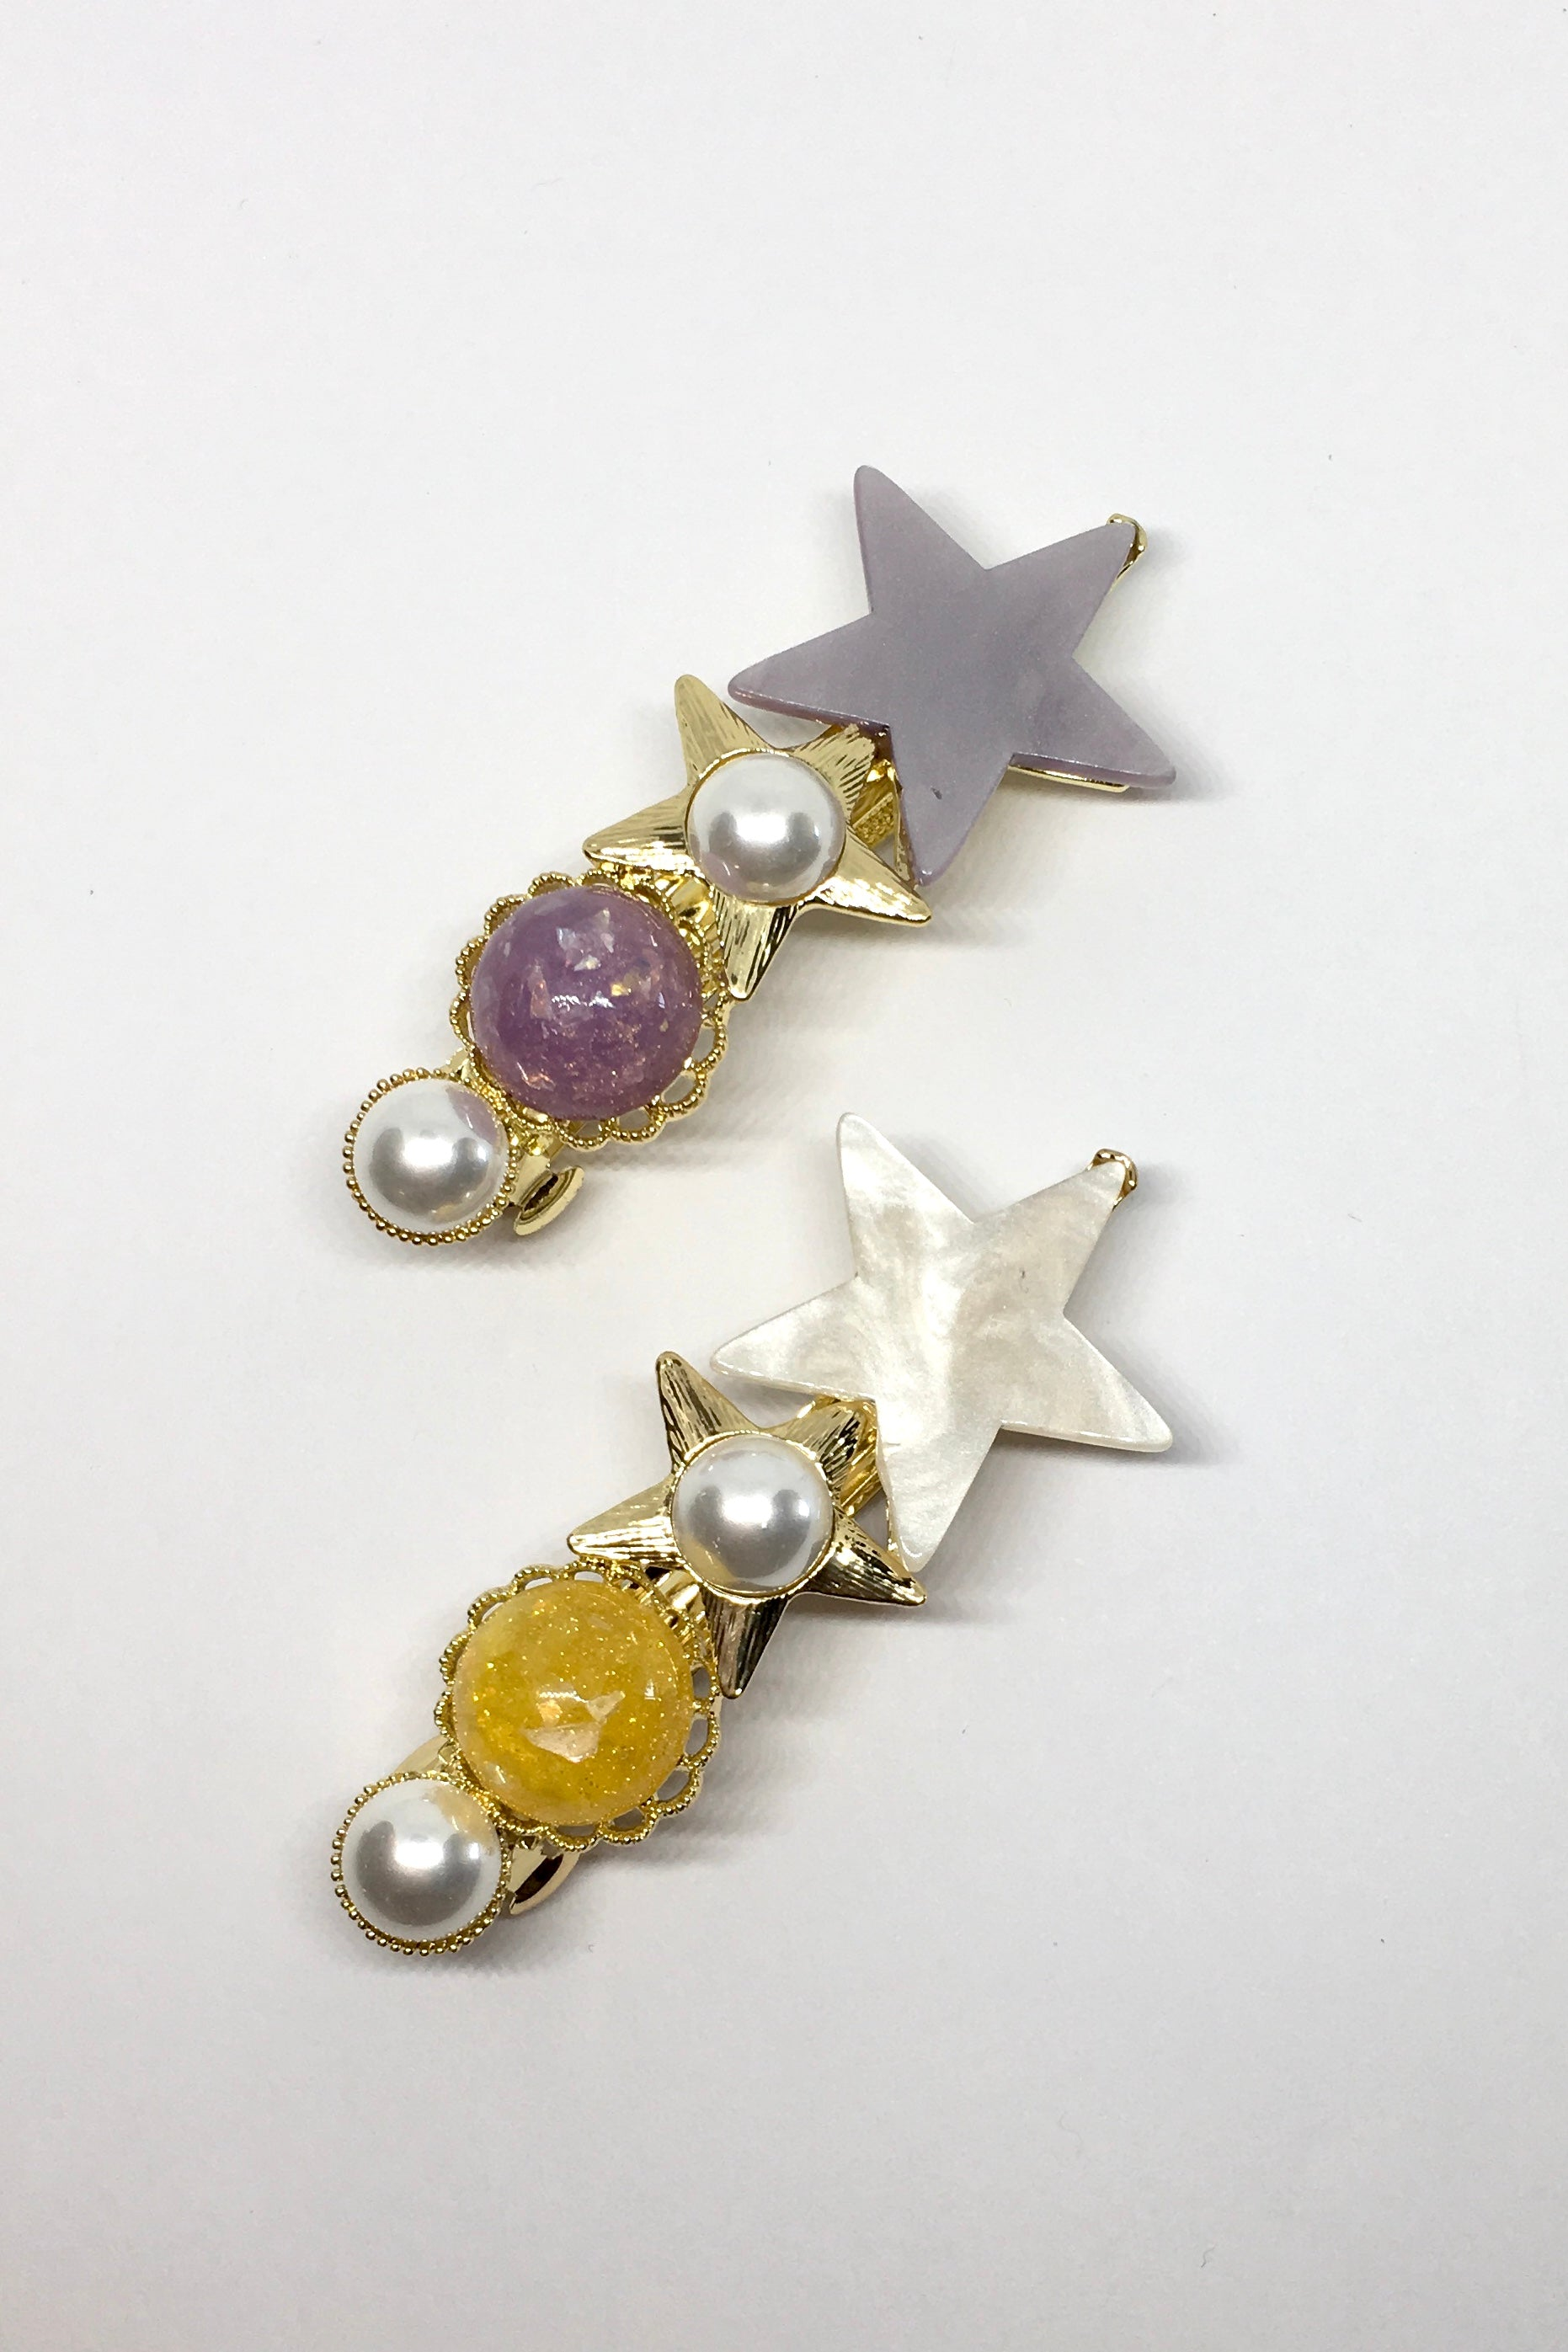 Womens hair accessories. 90s inspired hair clips. Shooting star design of marble stars and beads. Available in purple or yellow. Super cute and quirky.